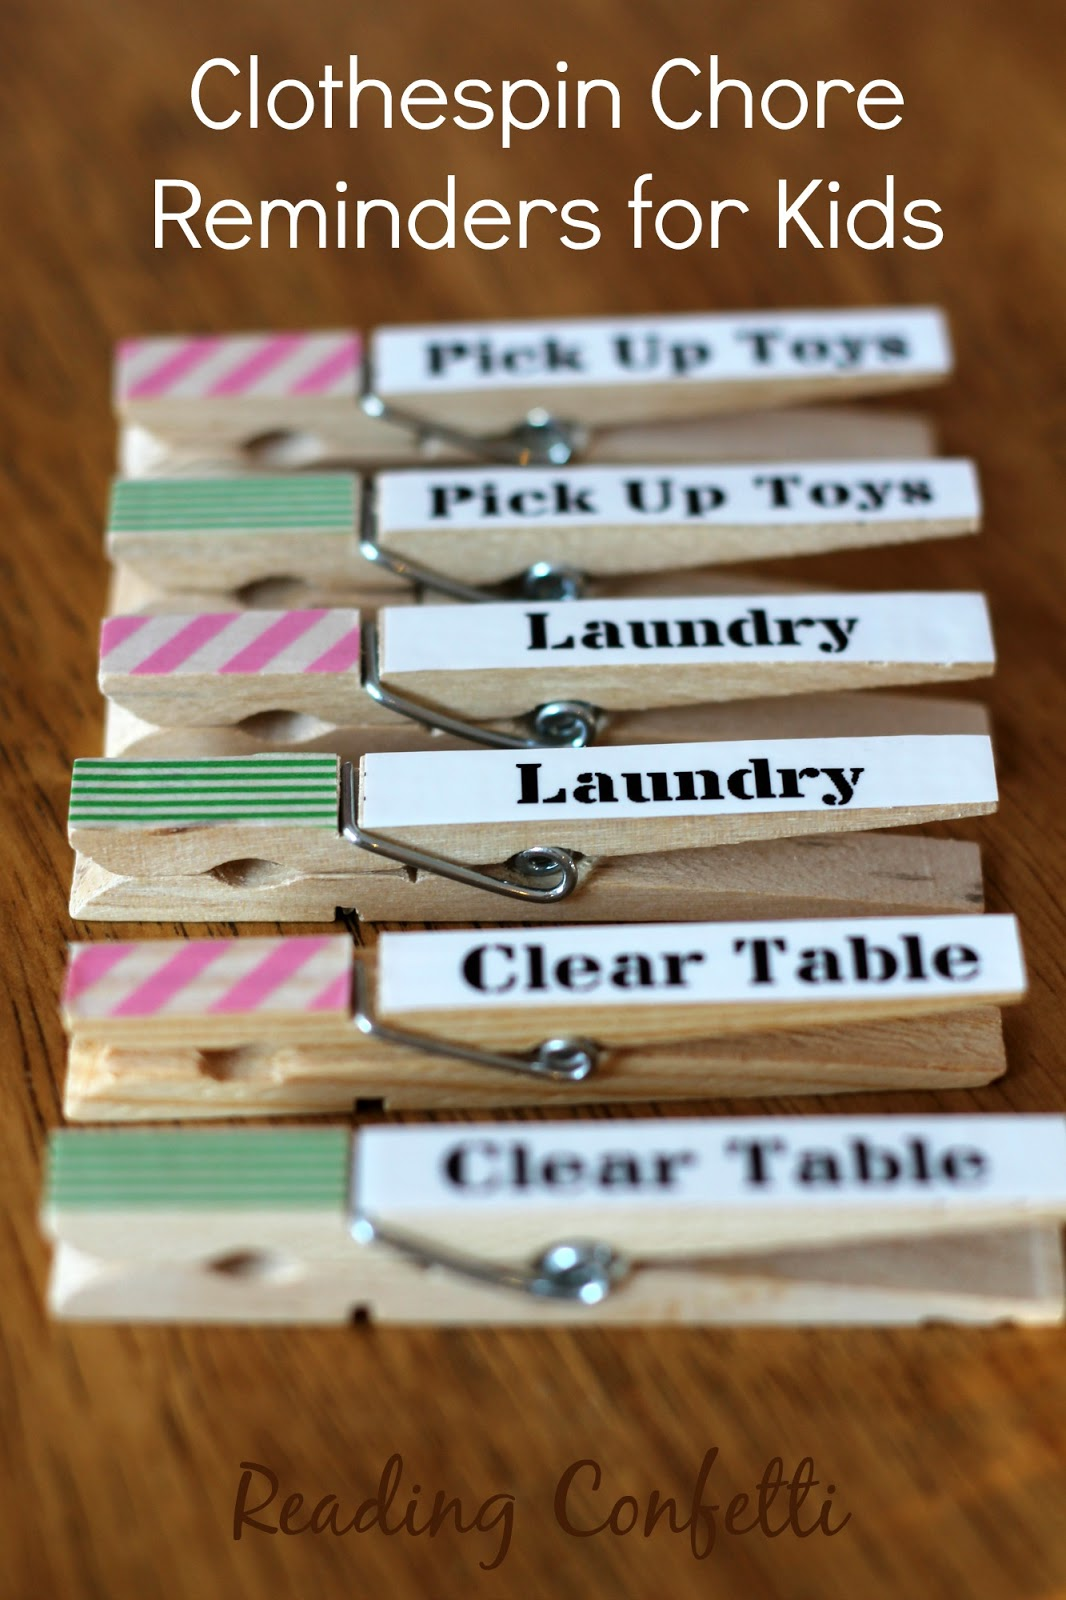 Easy clothespin chore reminders for kids